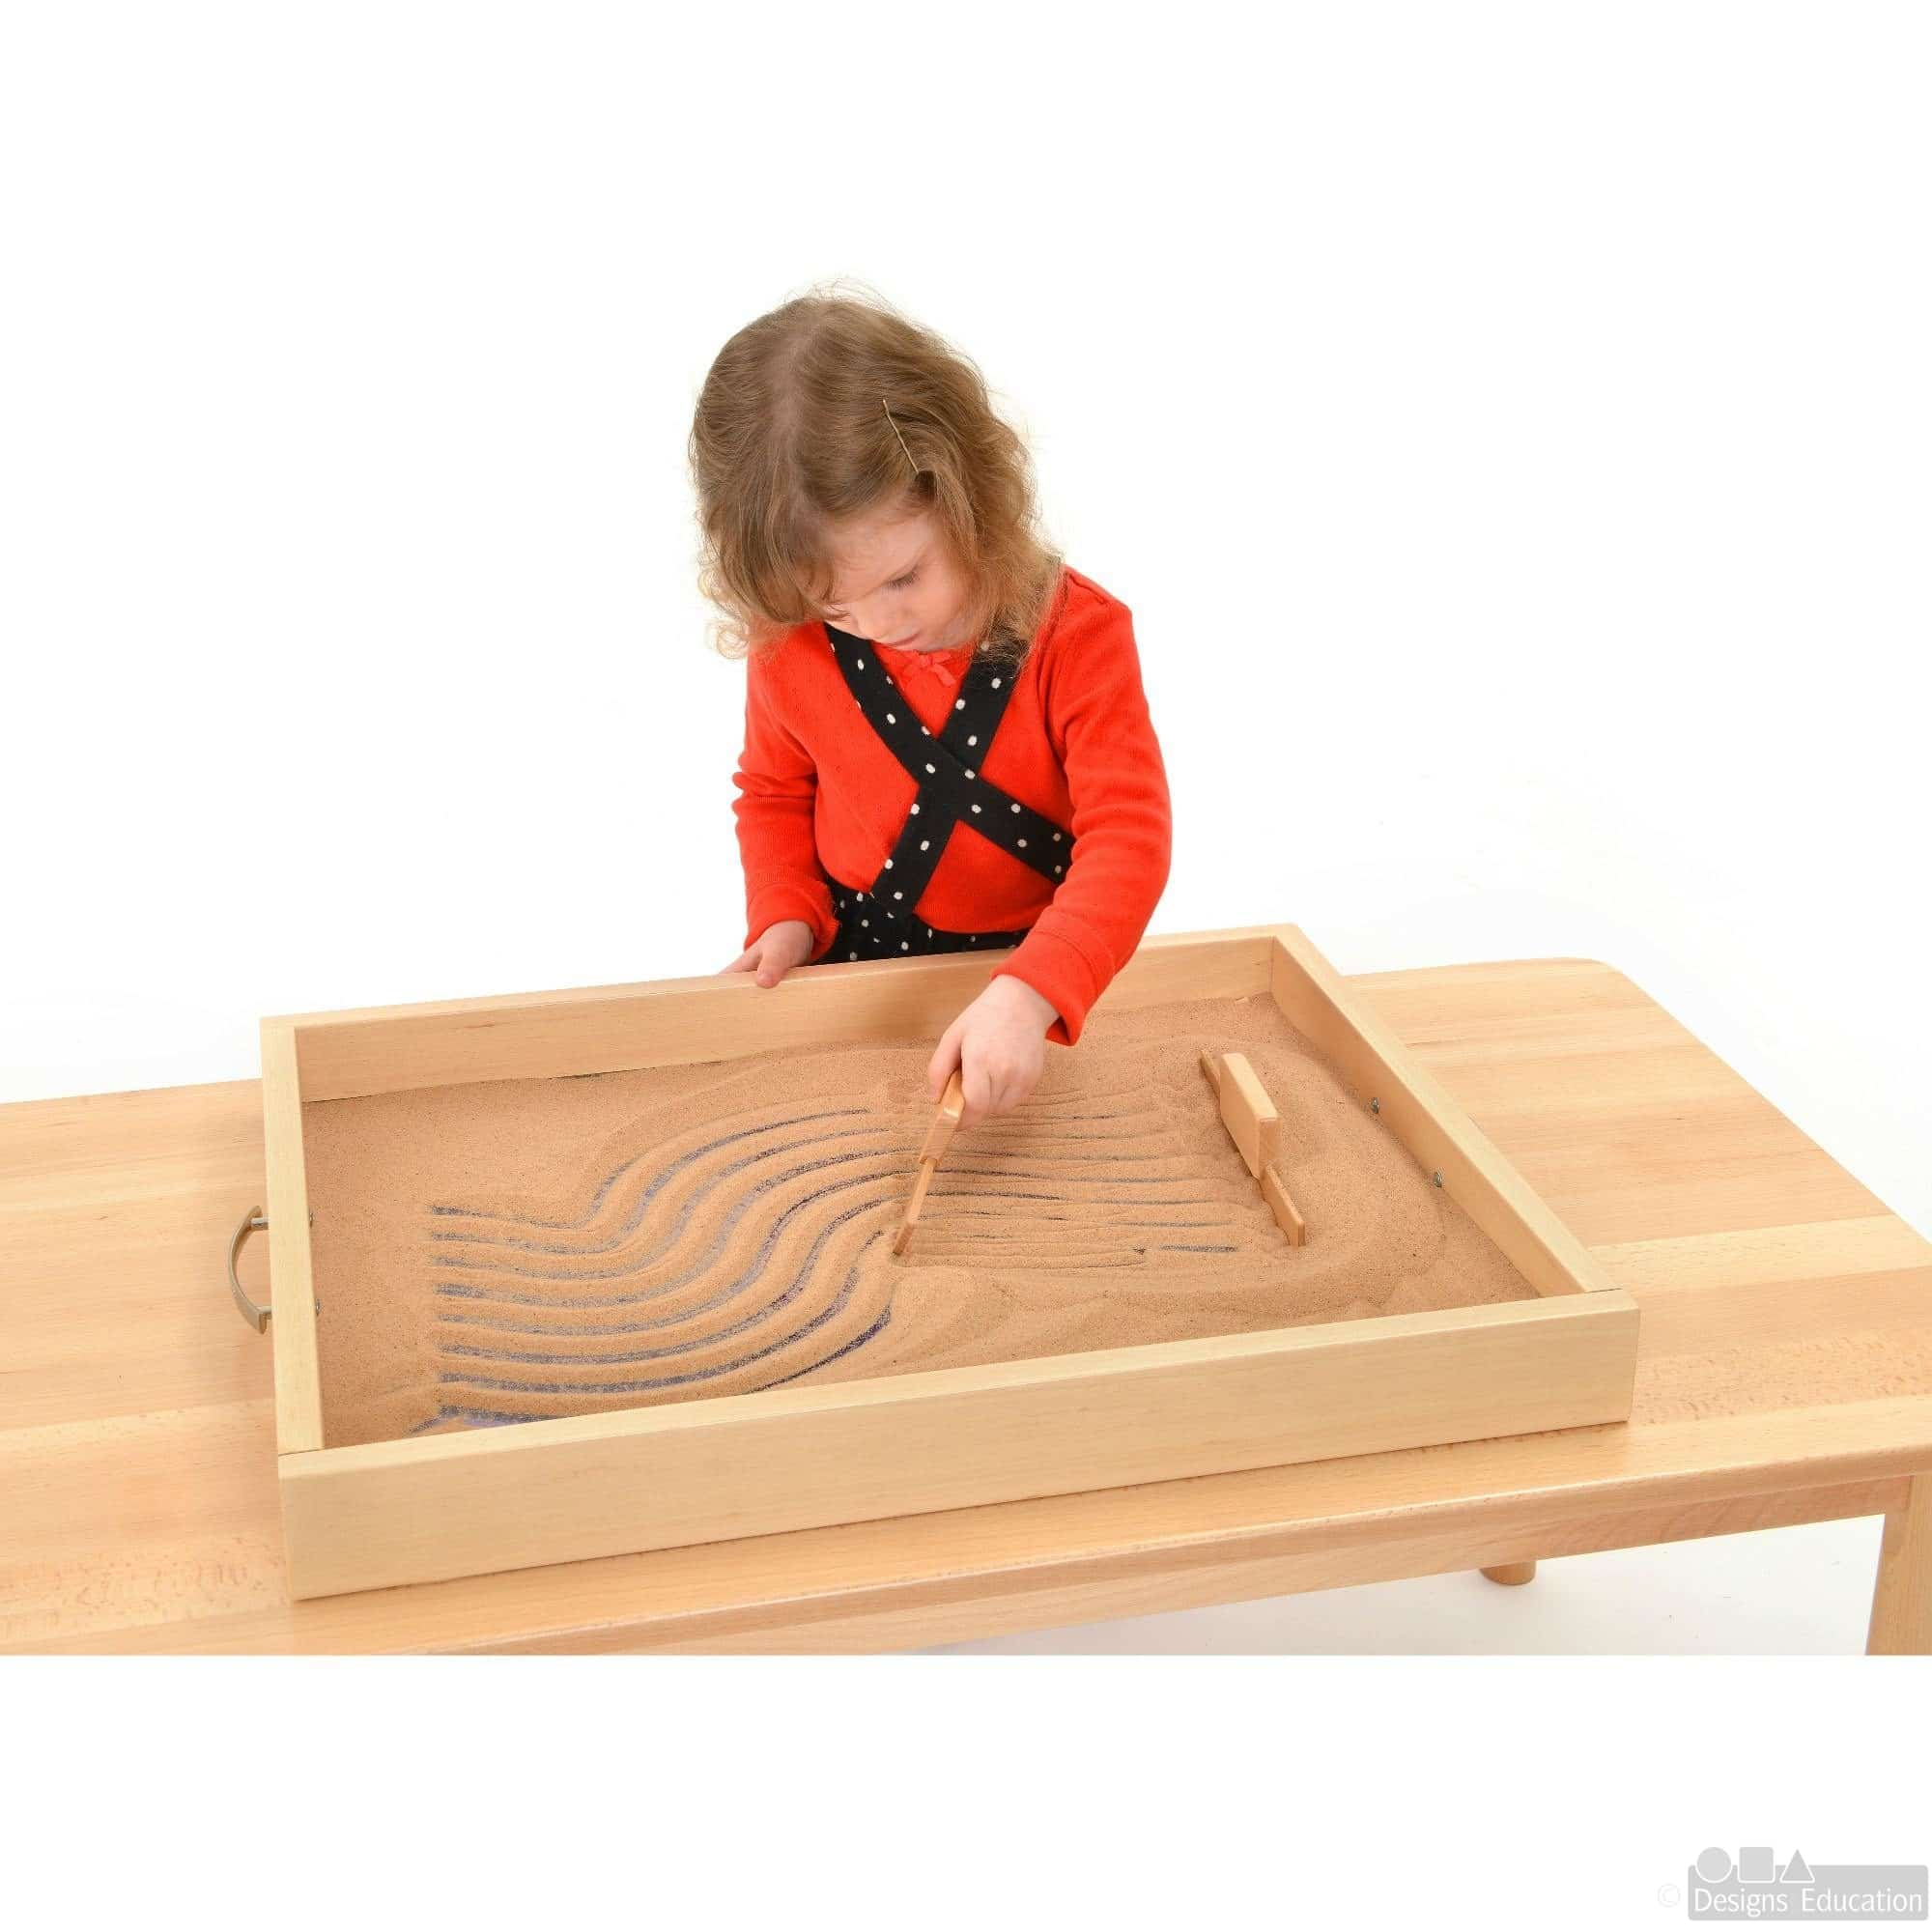 Table Top Sand Tray Designs For Education